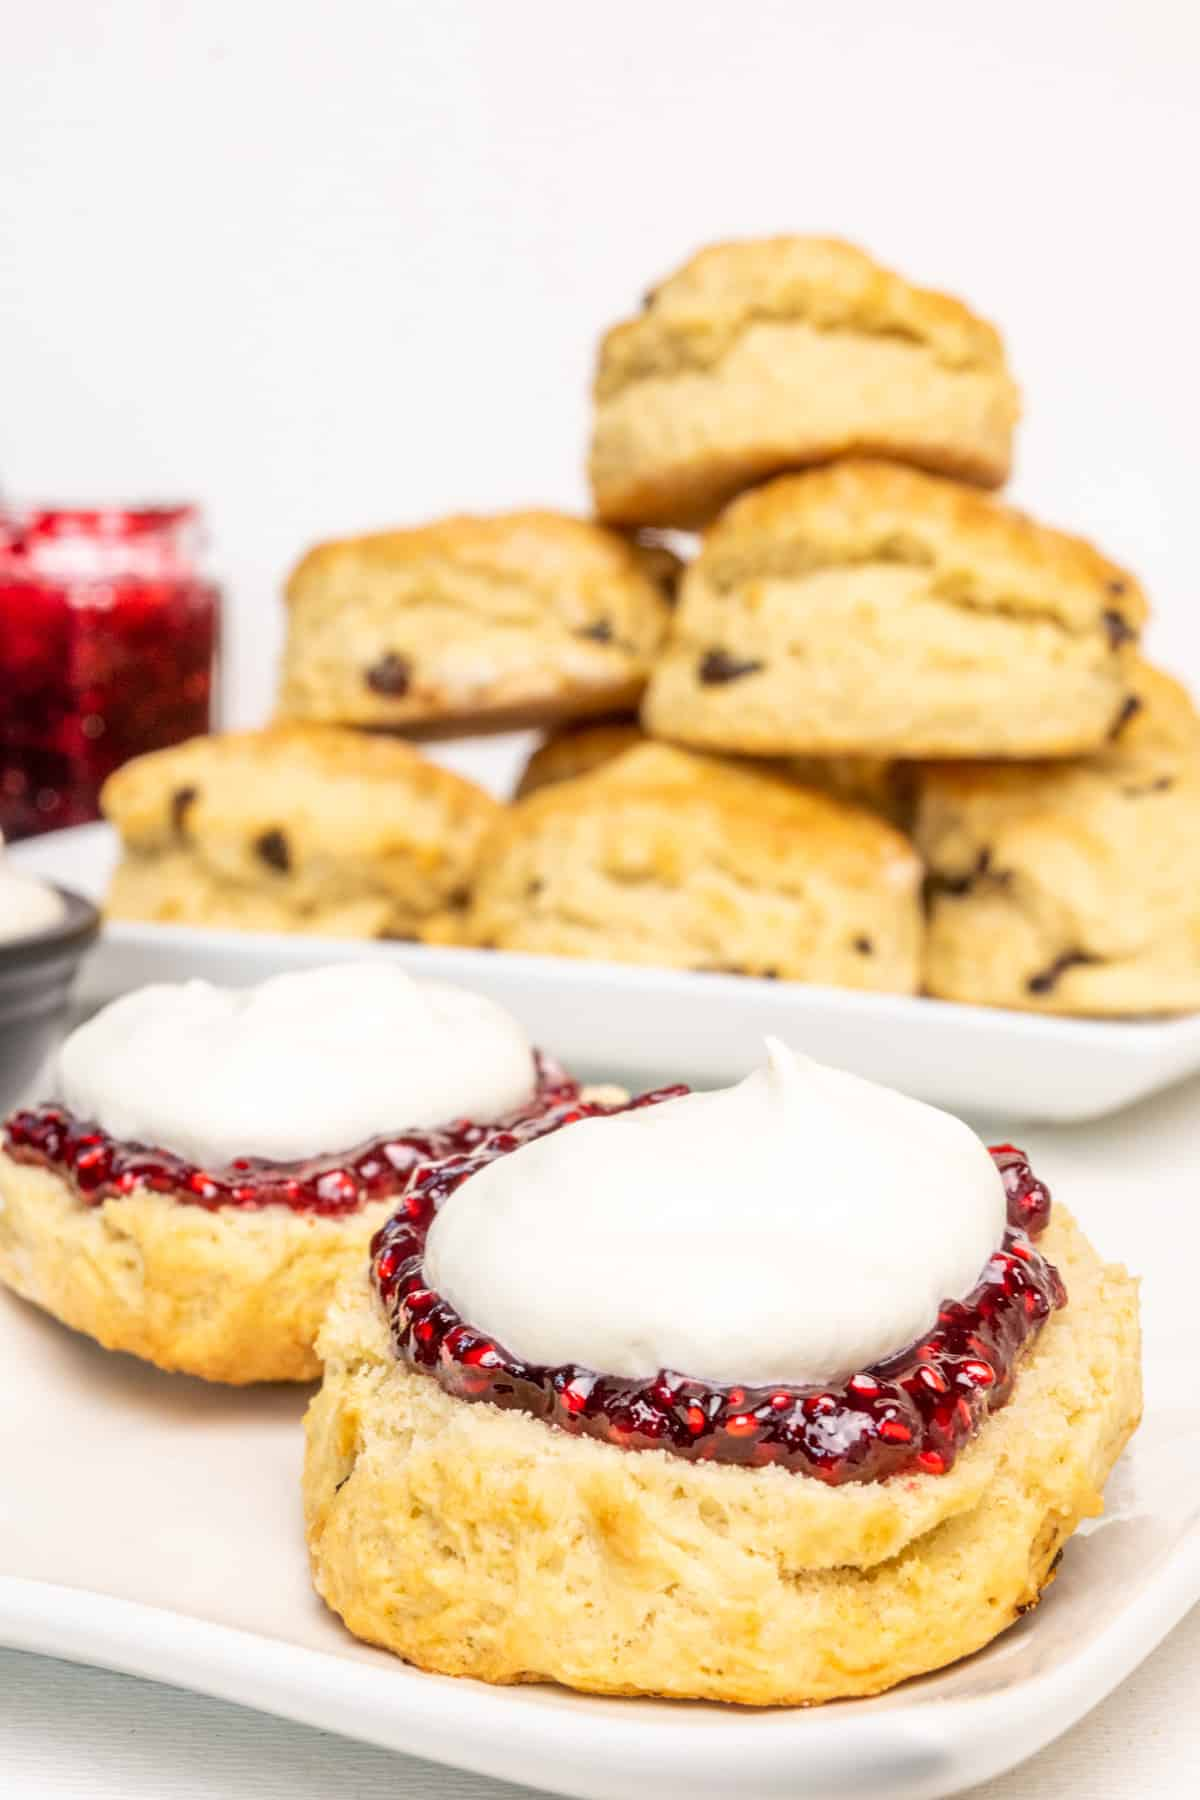 A scone halved and topped with raspberry jam and a dollop of whipped cream, in front of a stack of scones on a plate.